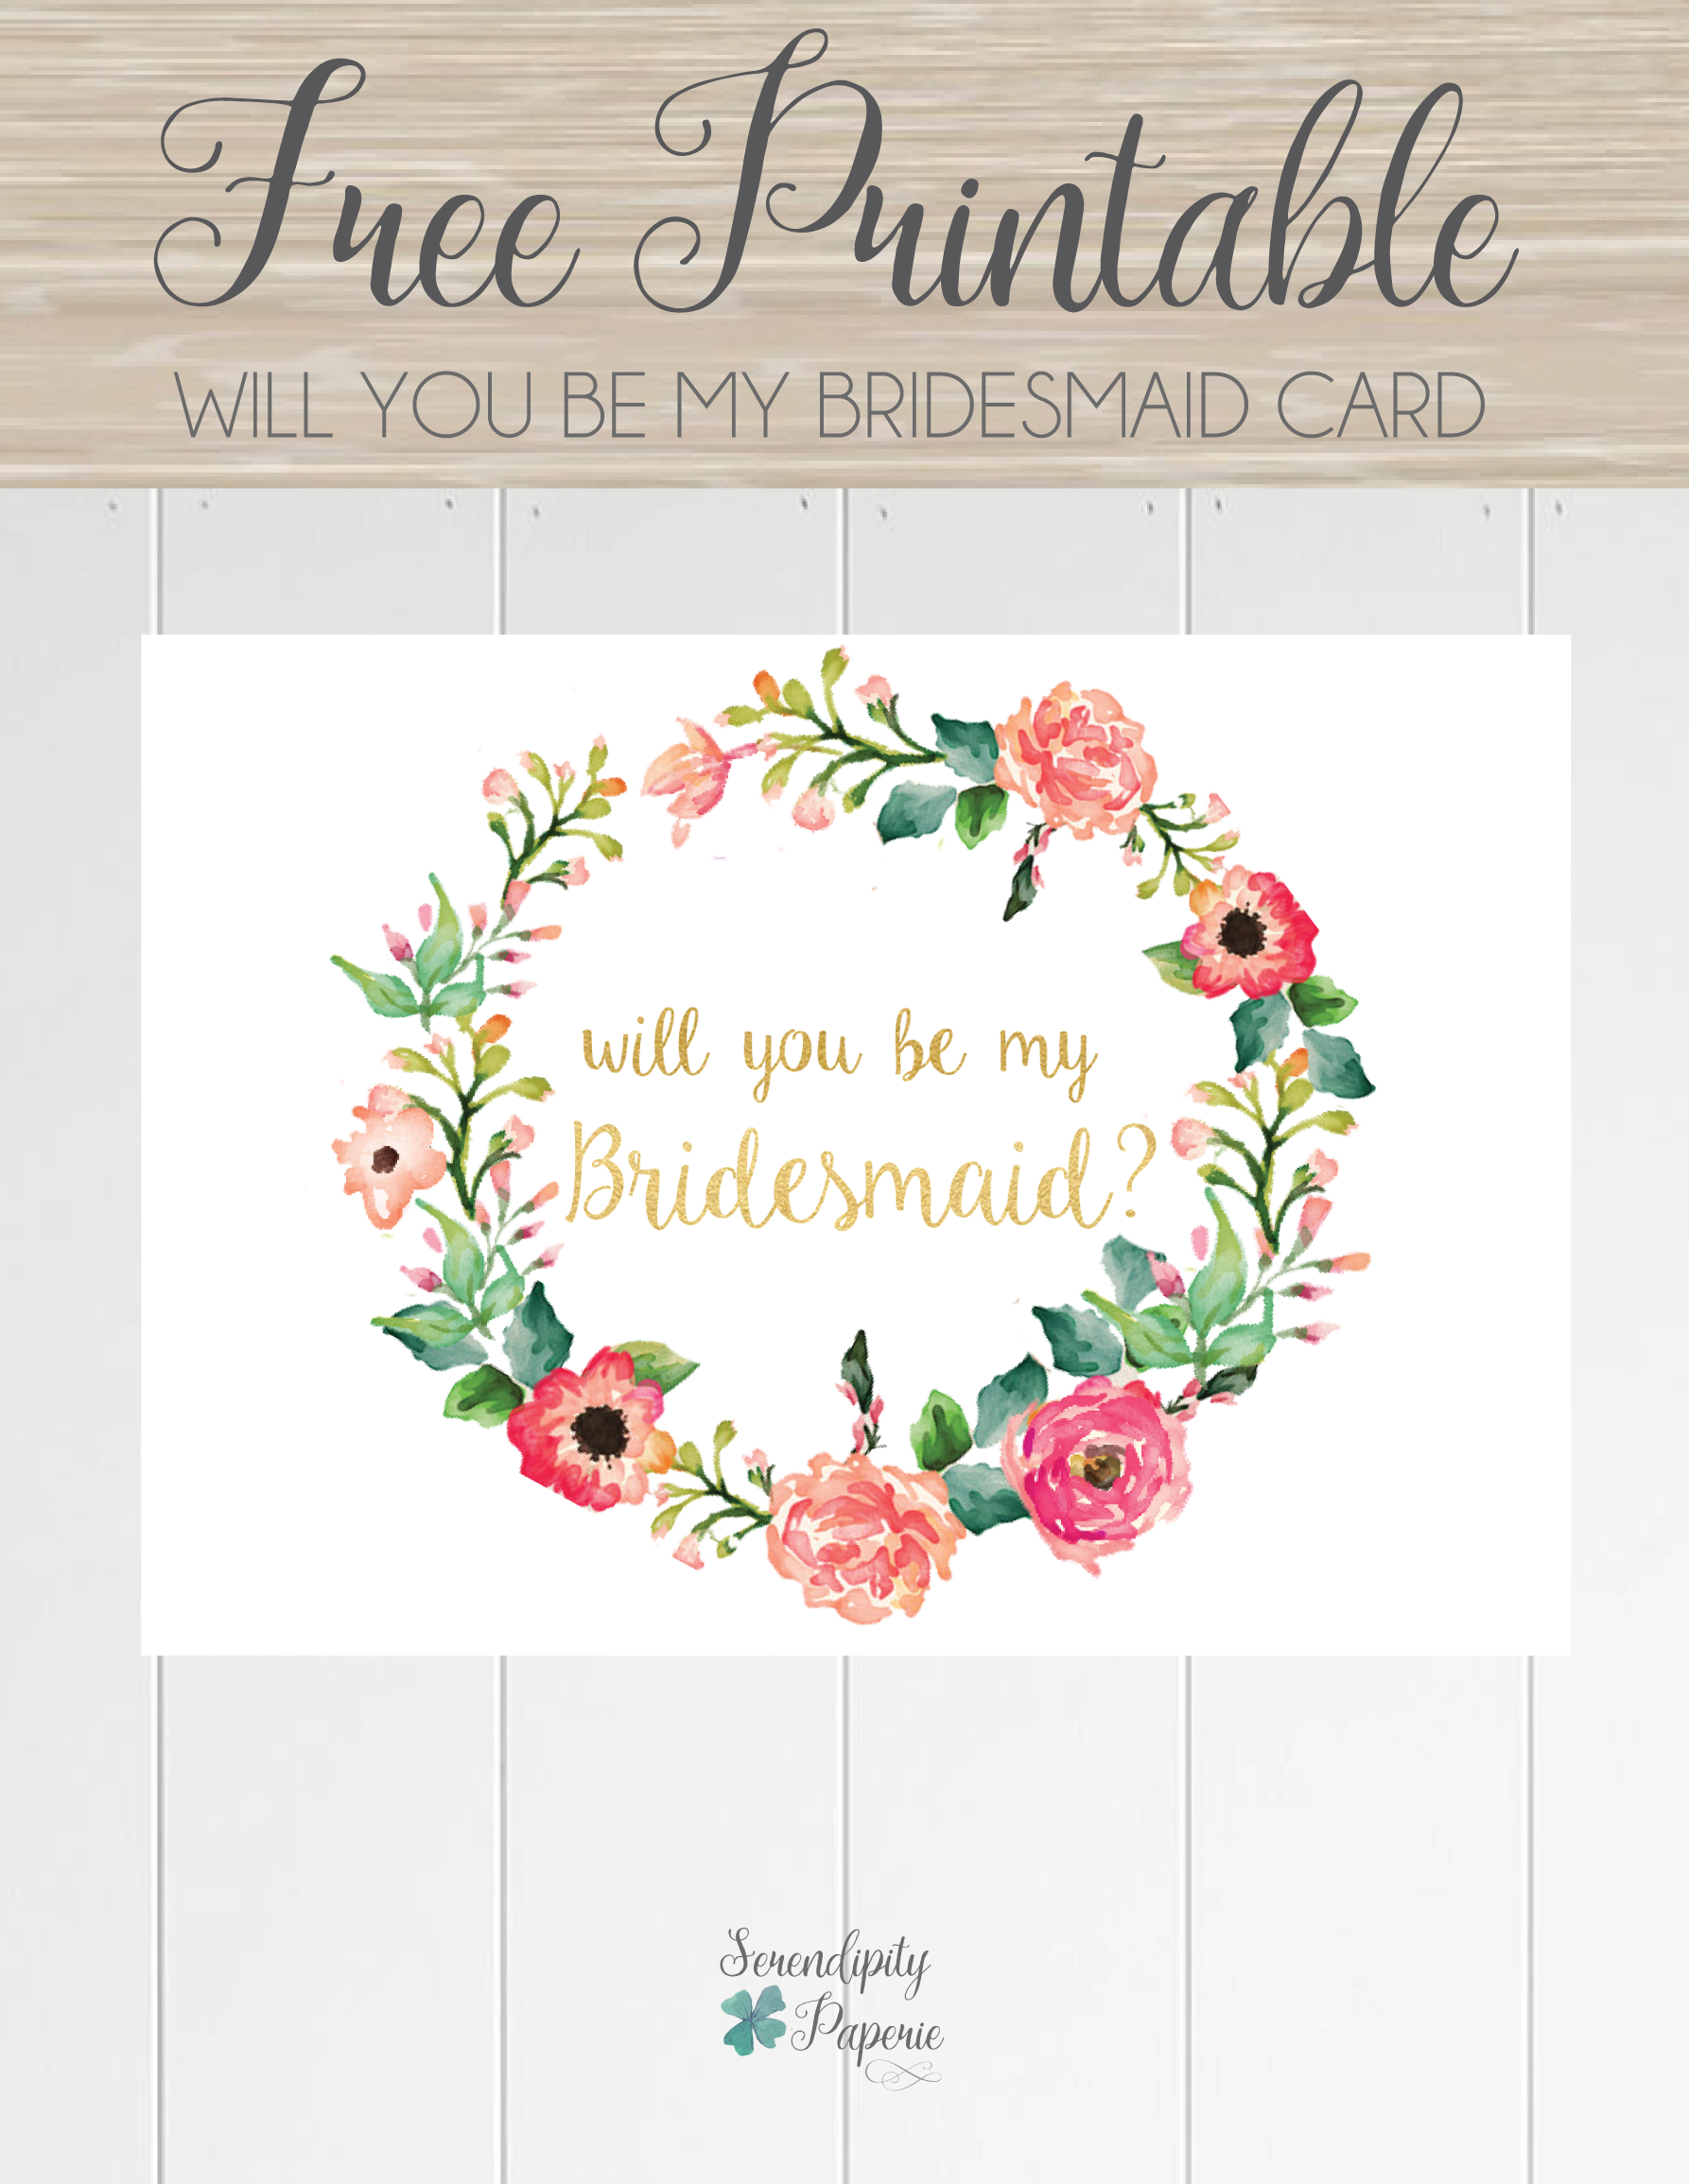 Free Printable Will You Be My Bridesmaid Card. Only At Serendipity - Free Printable Will You Be My Bridesmaid Cards